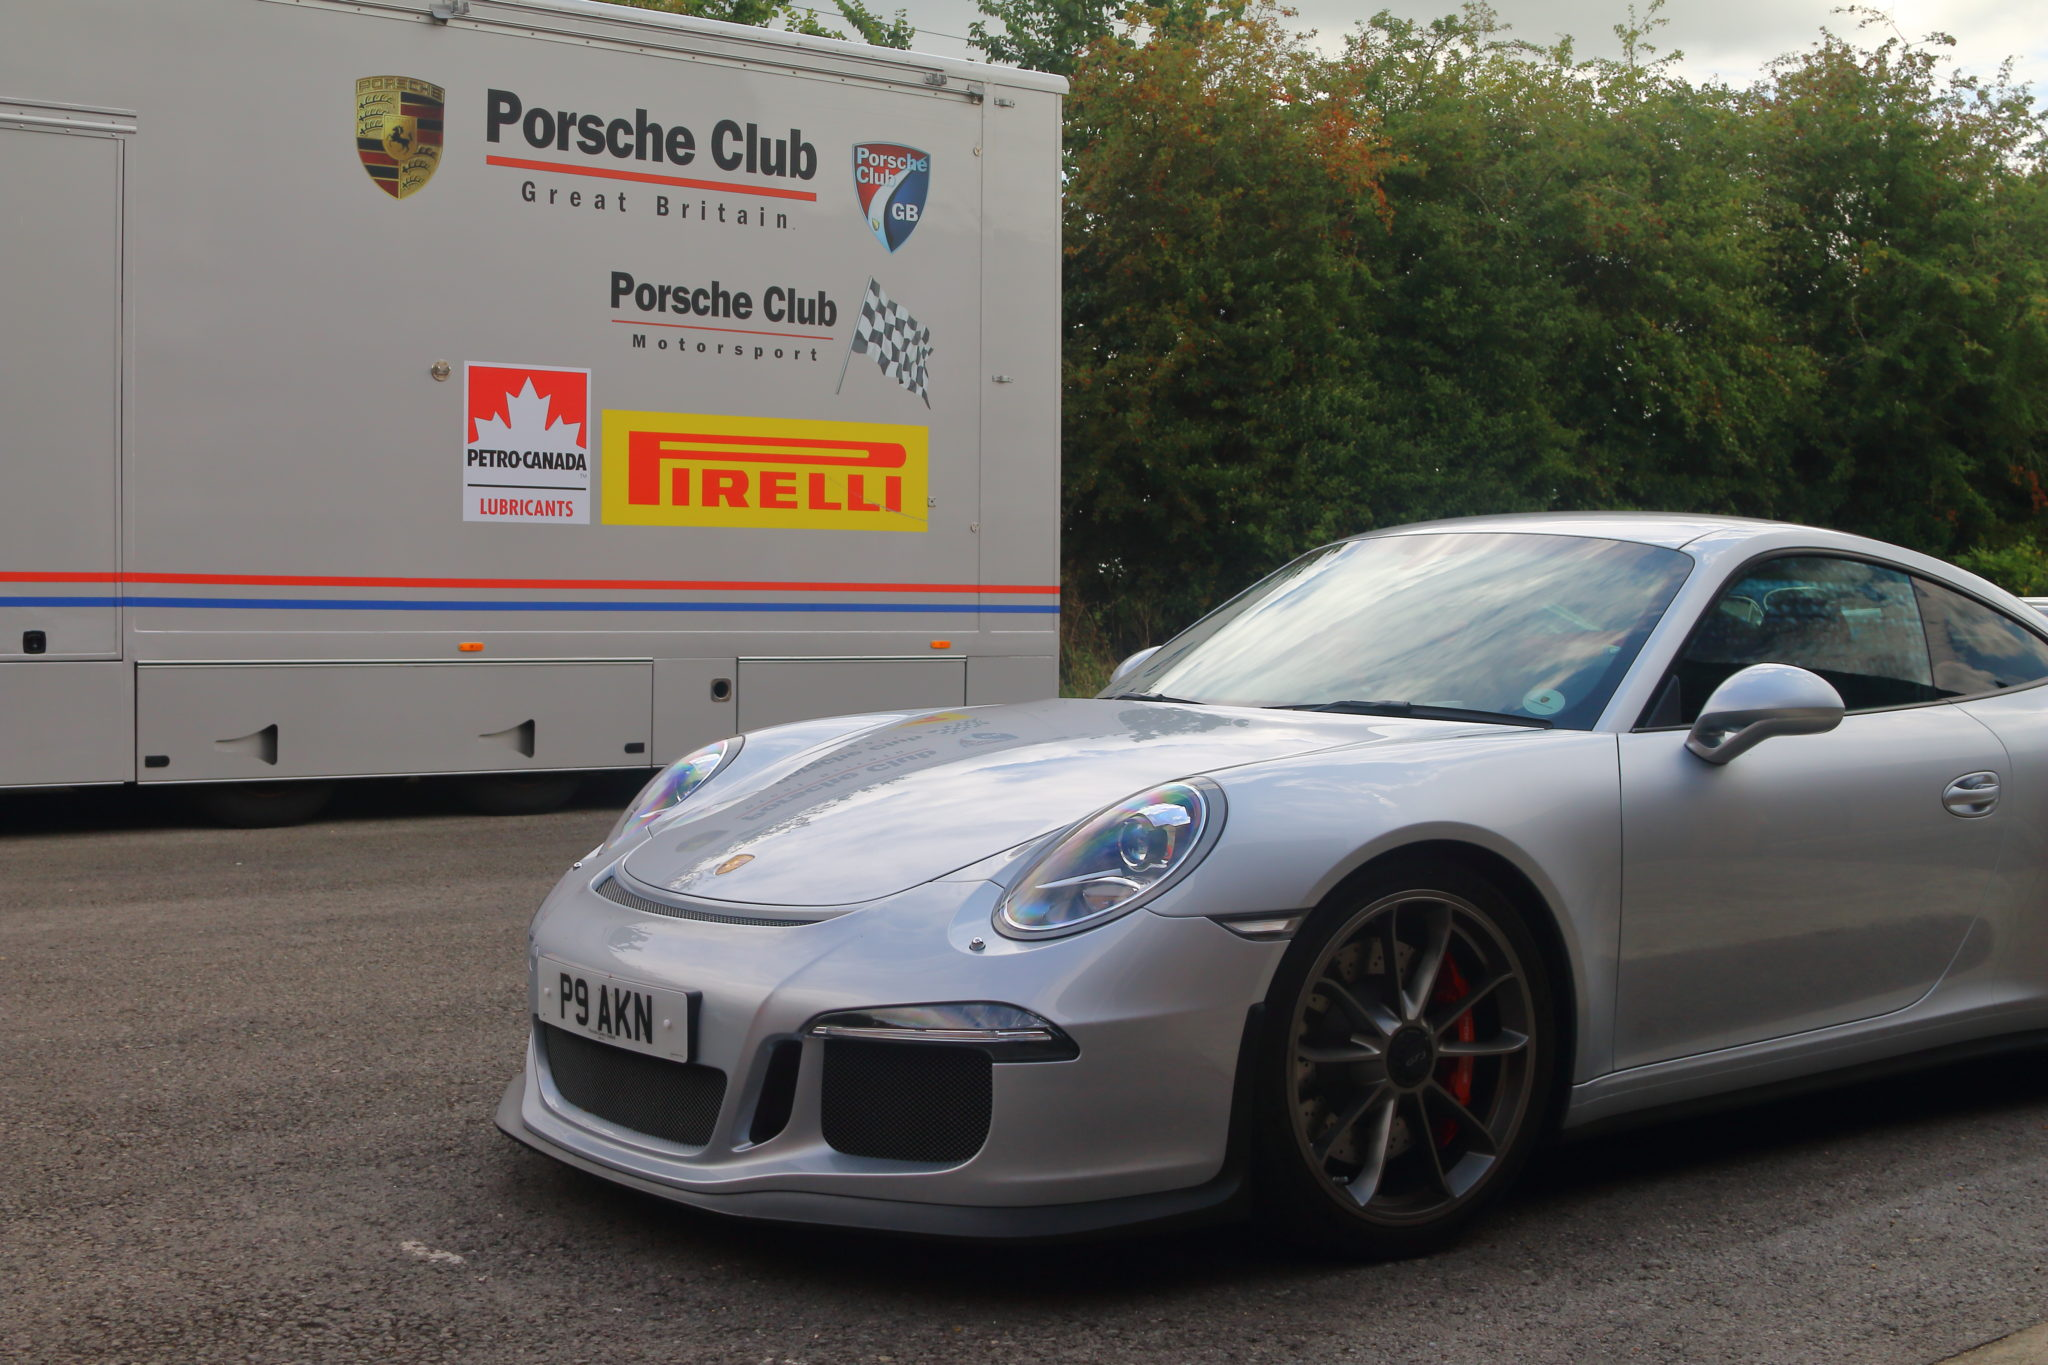 Breakfast with Porsche Club GB